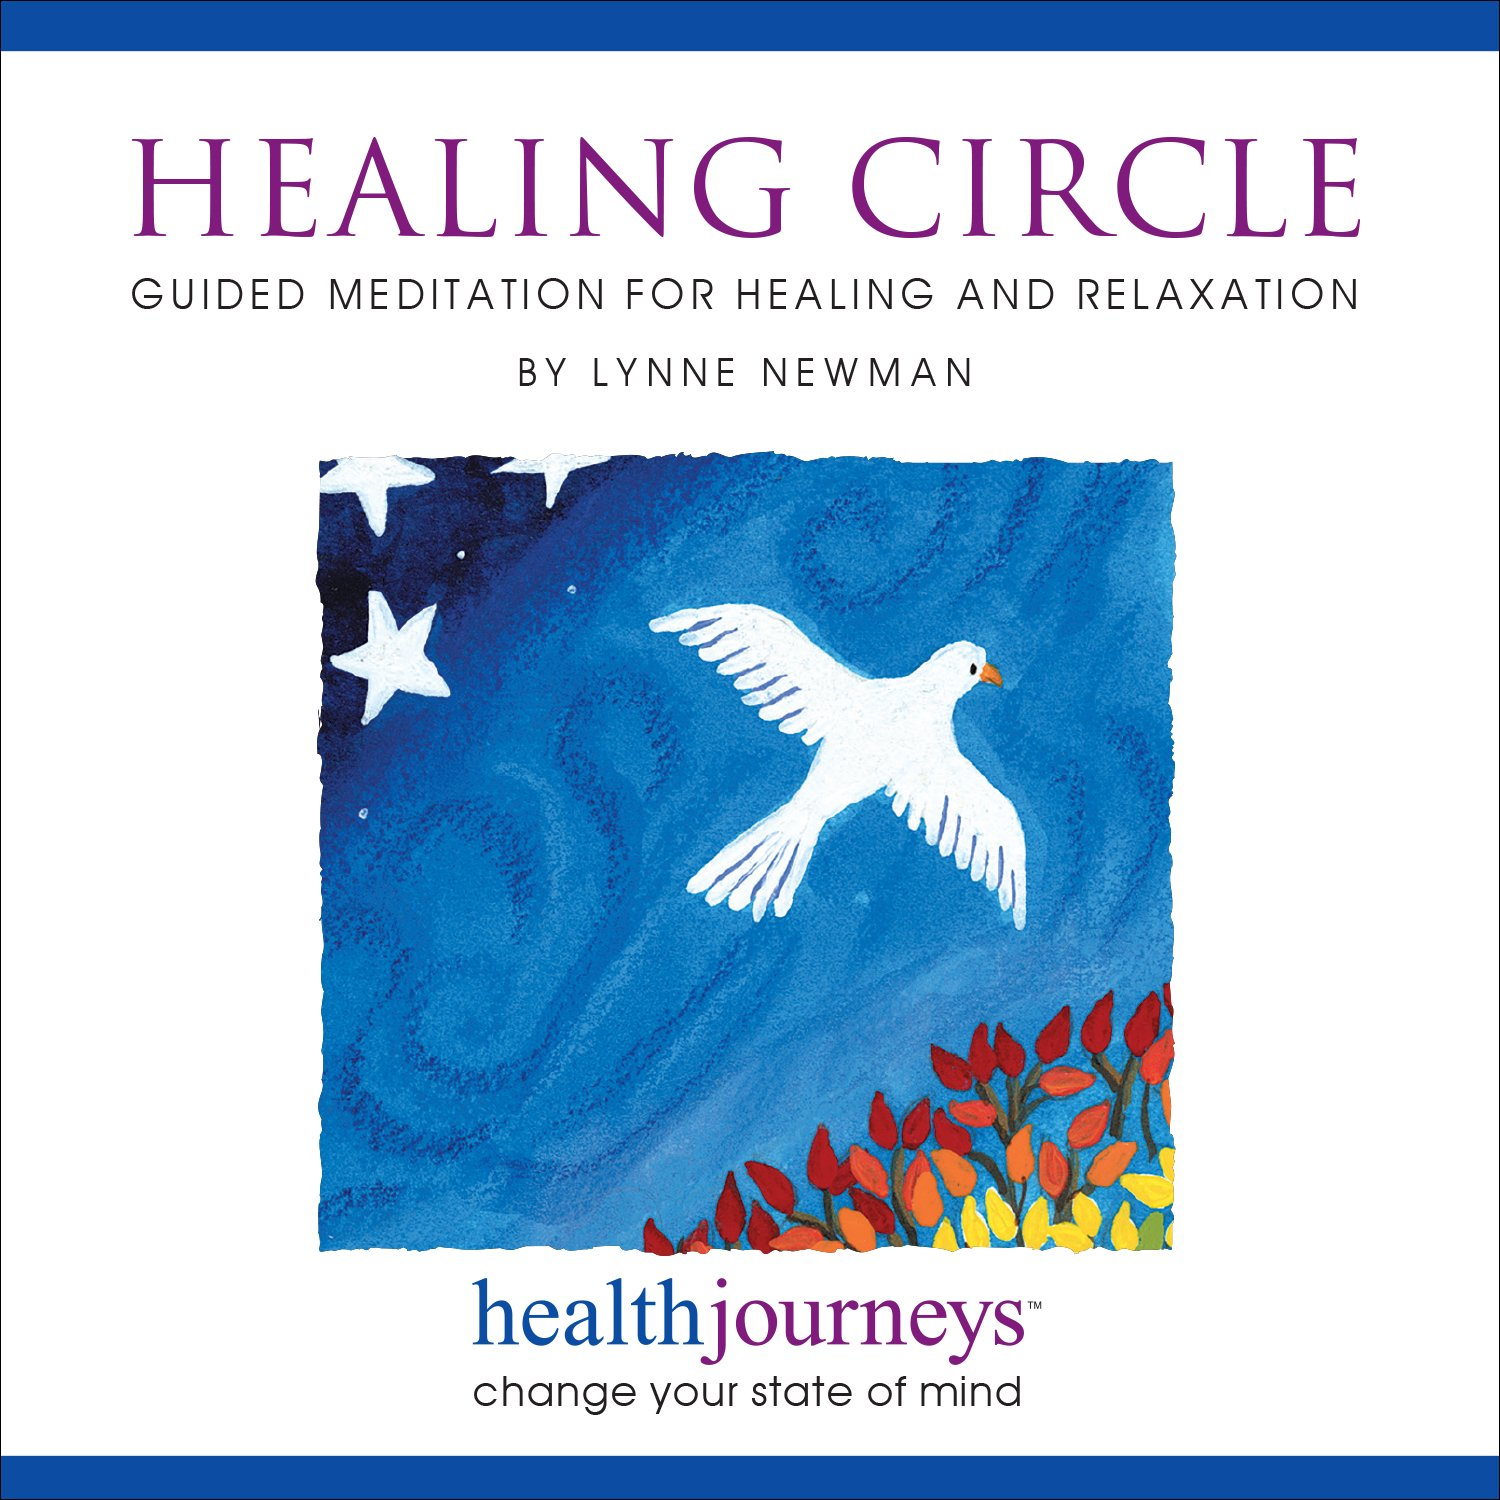 Healing Circle: Guided Meditation for Healing and Relaxation - Affirming, Empowering, Uplifting Guided Imagery